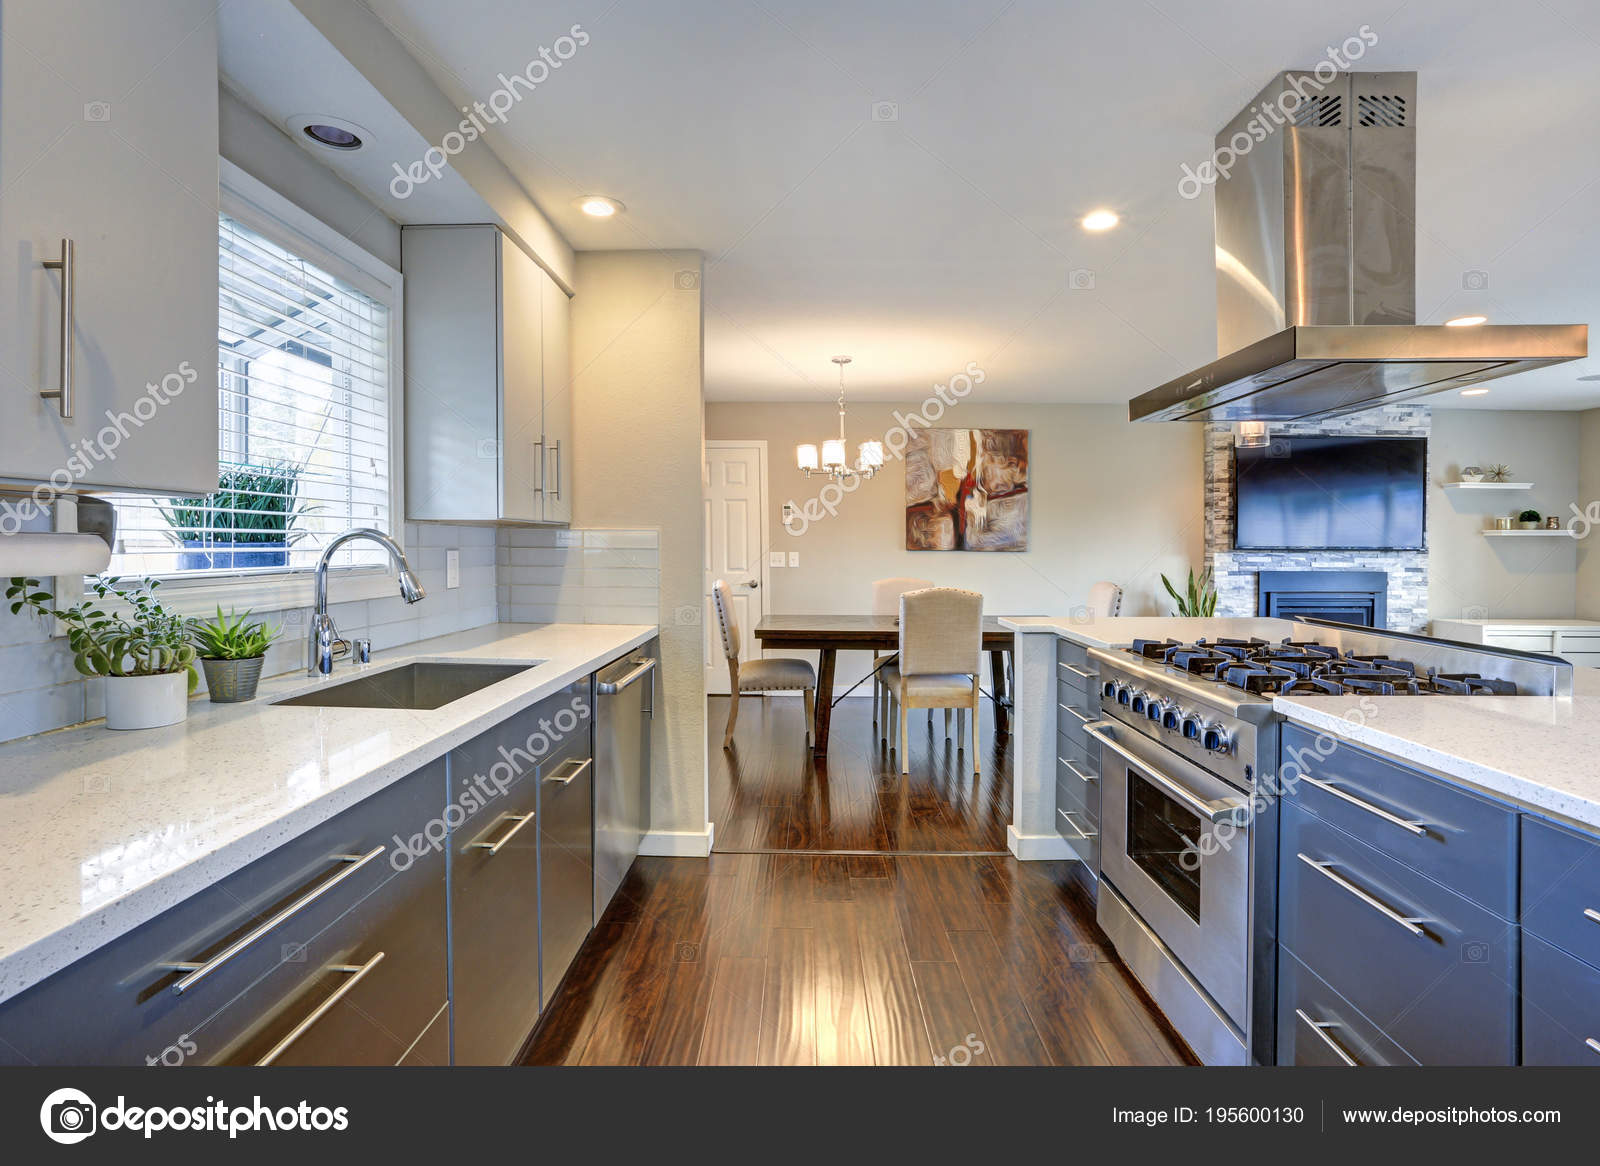 updated kitchens kitchen storage cabinets with doors 时尚的更新厨房与不锈钢用具 图库照片 c alabn 195600130